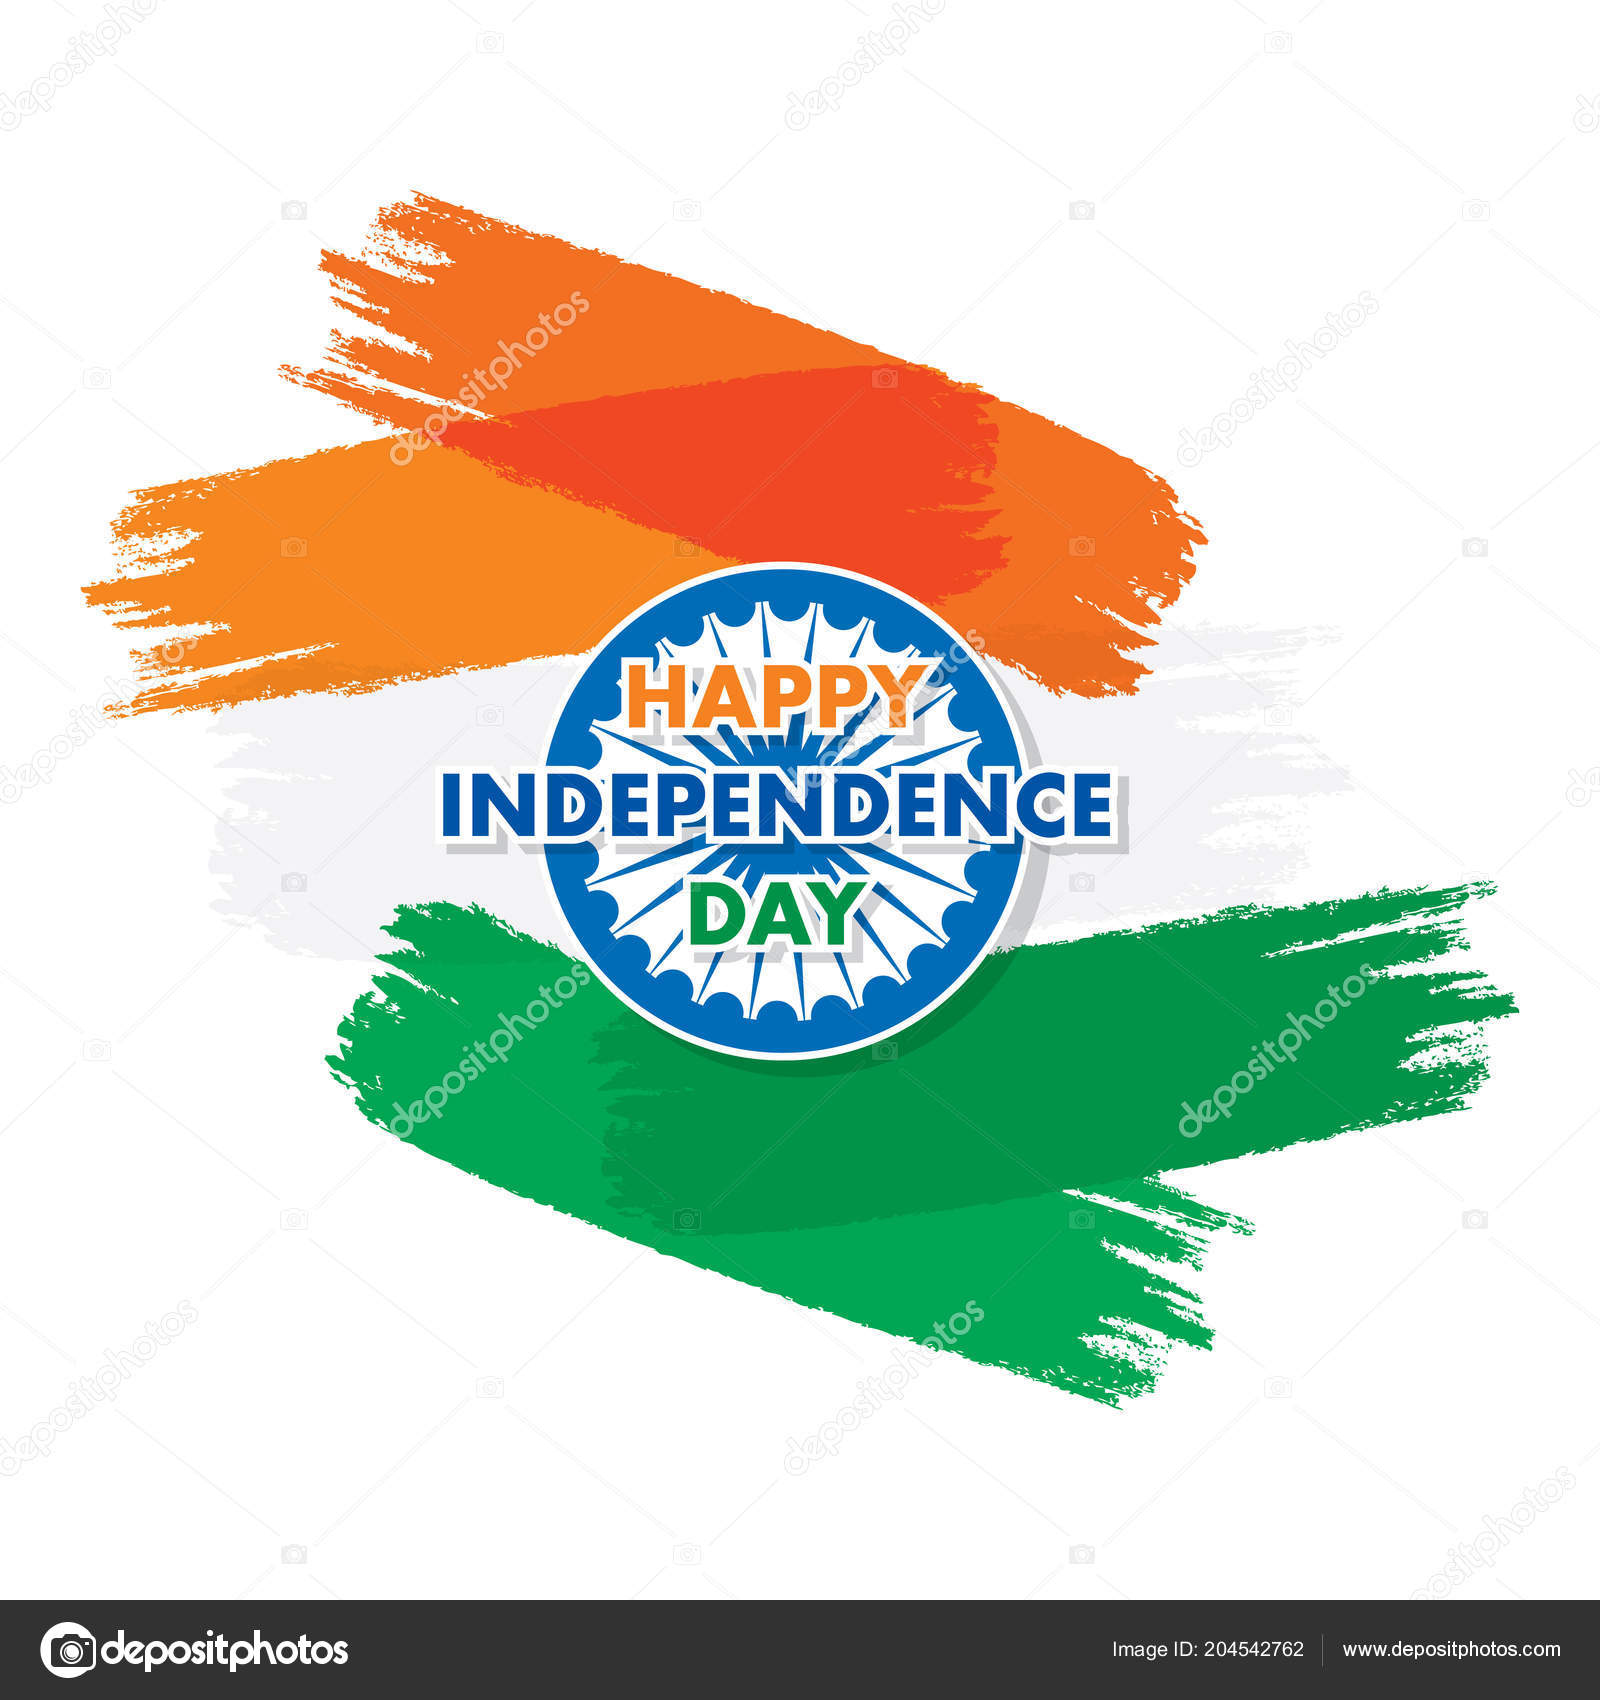 Independence Day India 15th August Greeting Design Brush Stroke